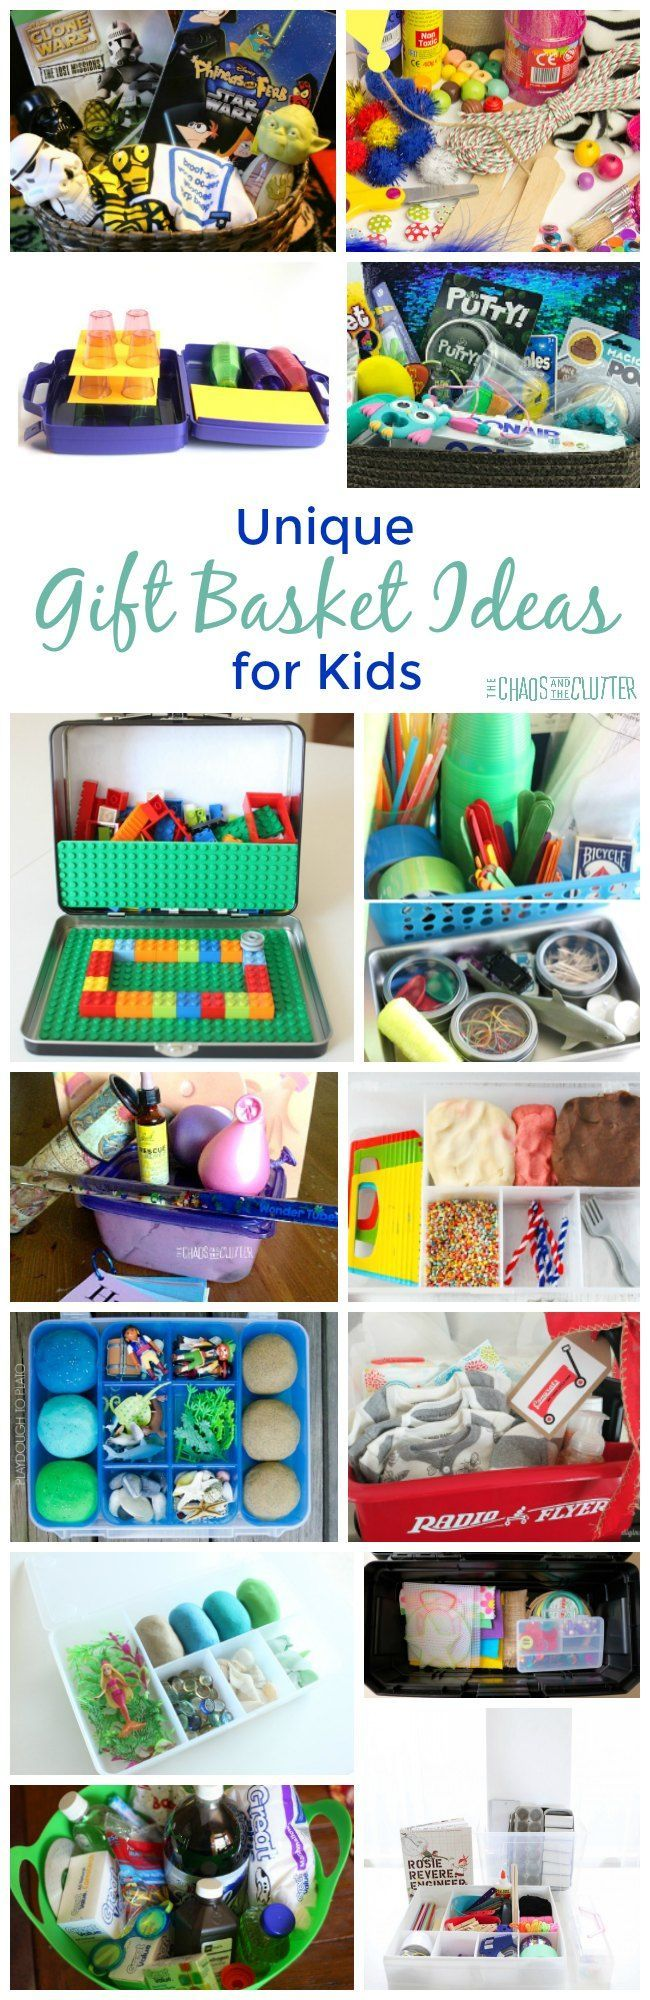 These unique gift basket ideas for kids are perfect for birthday gifts or for a Christmas surprise.